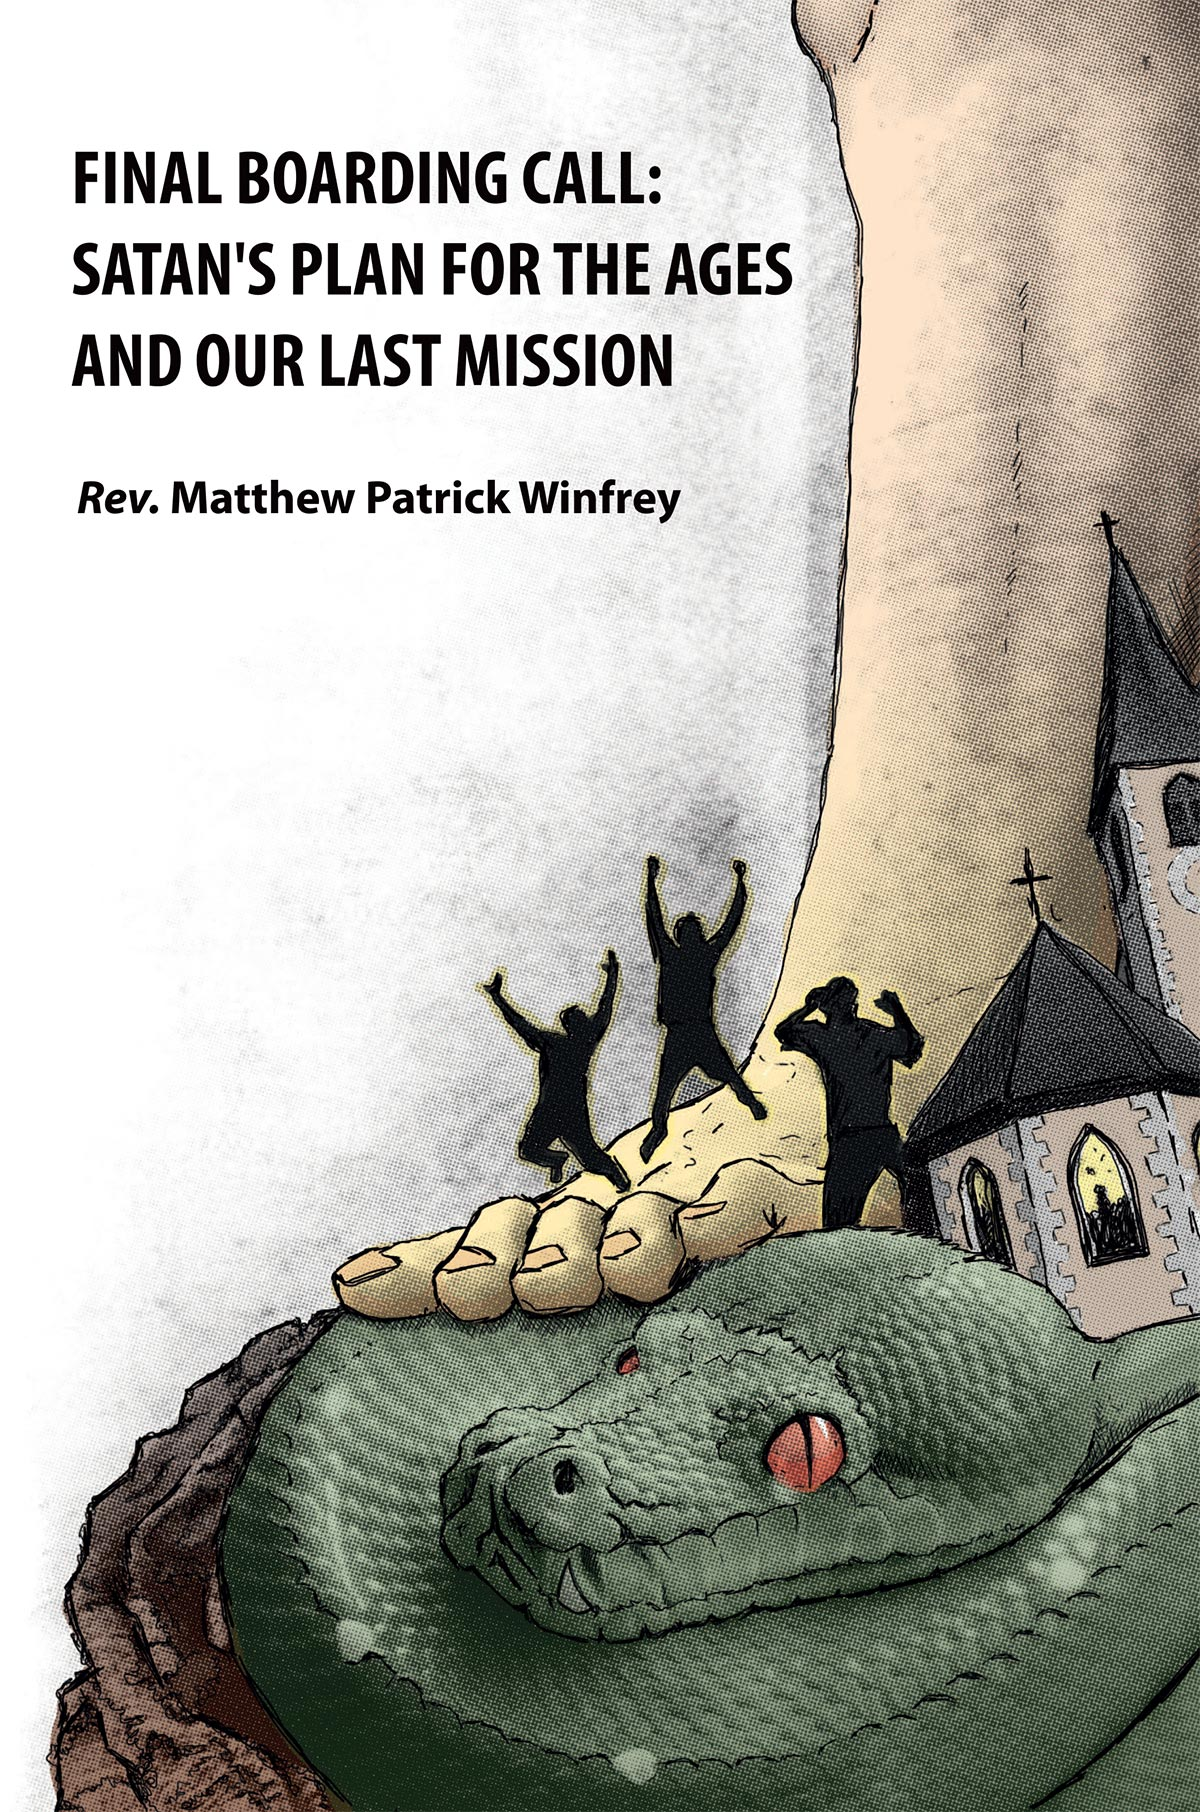 Satan's Plan for the Ages and our Last Mission, by Rev. Matthew Patrick Winfrey